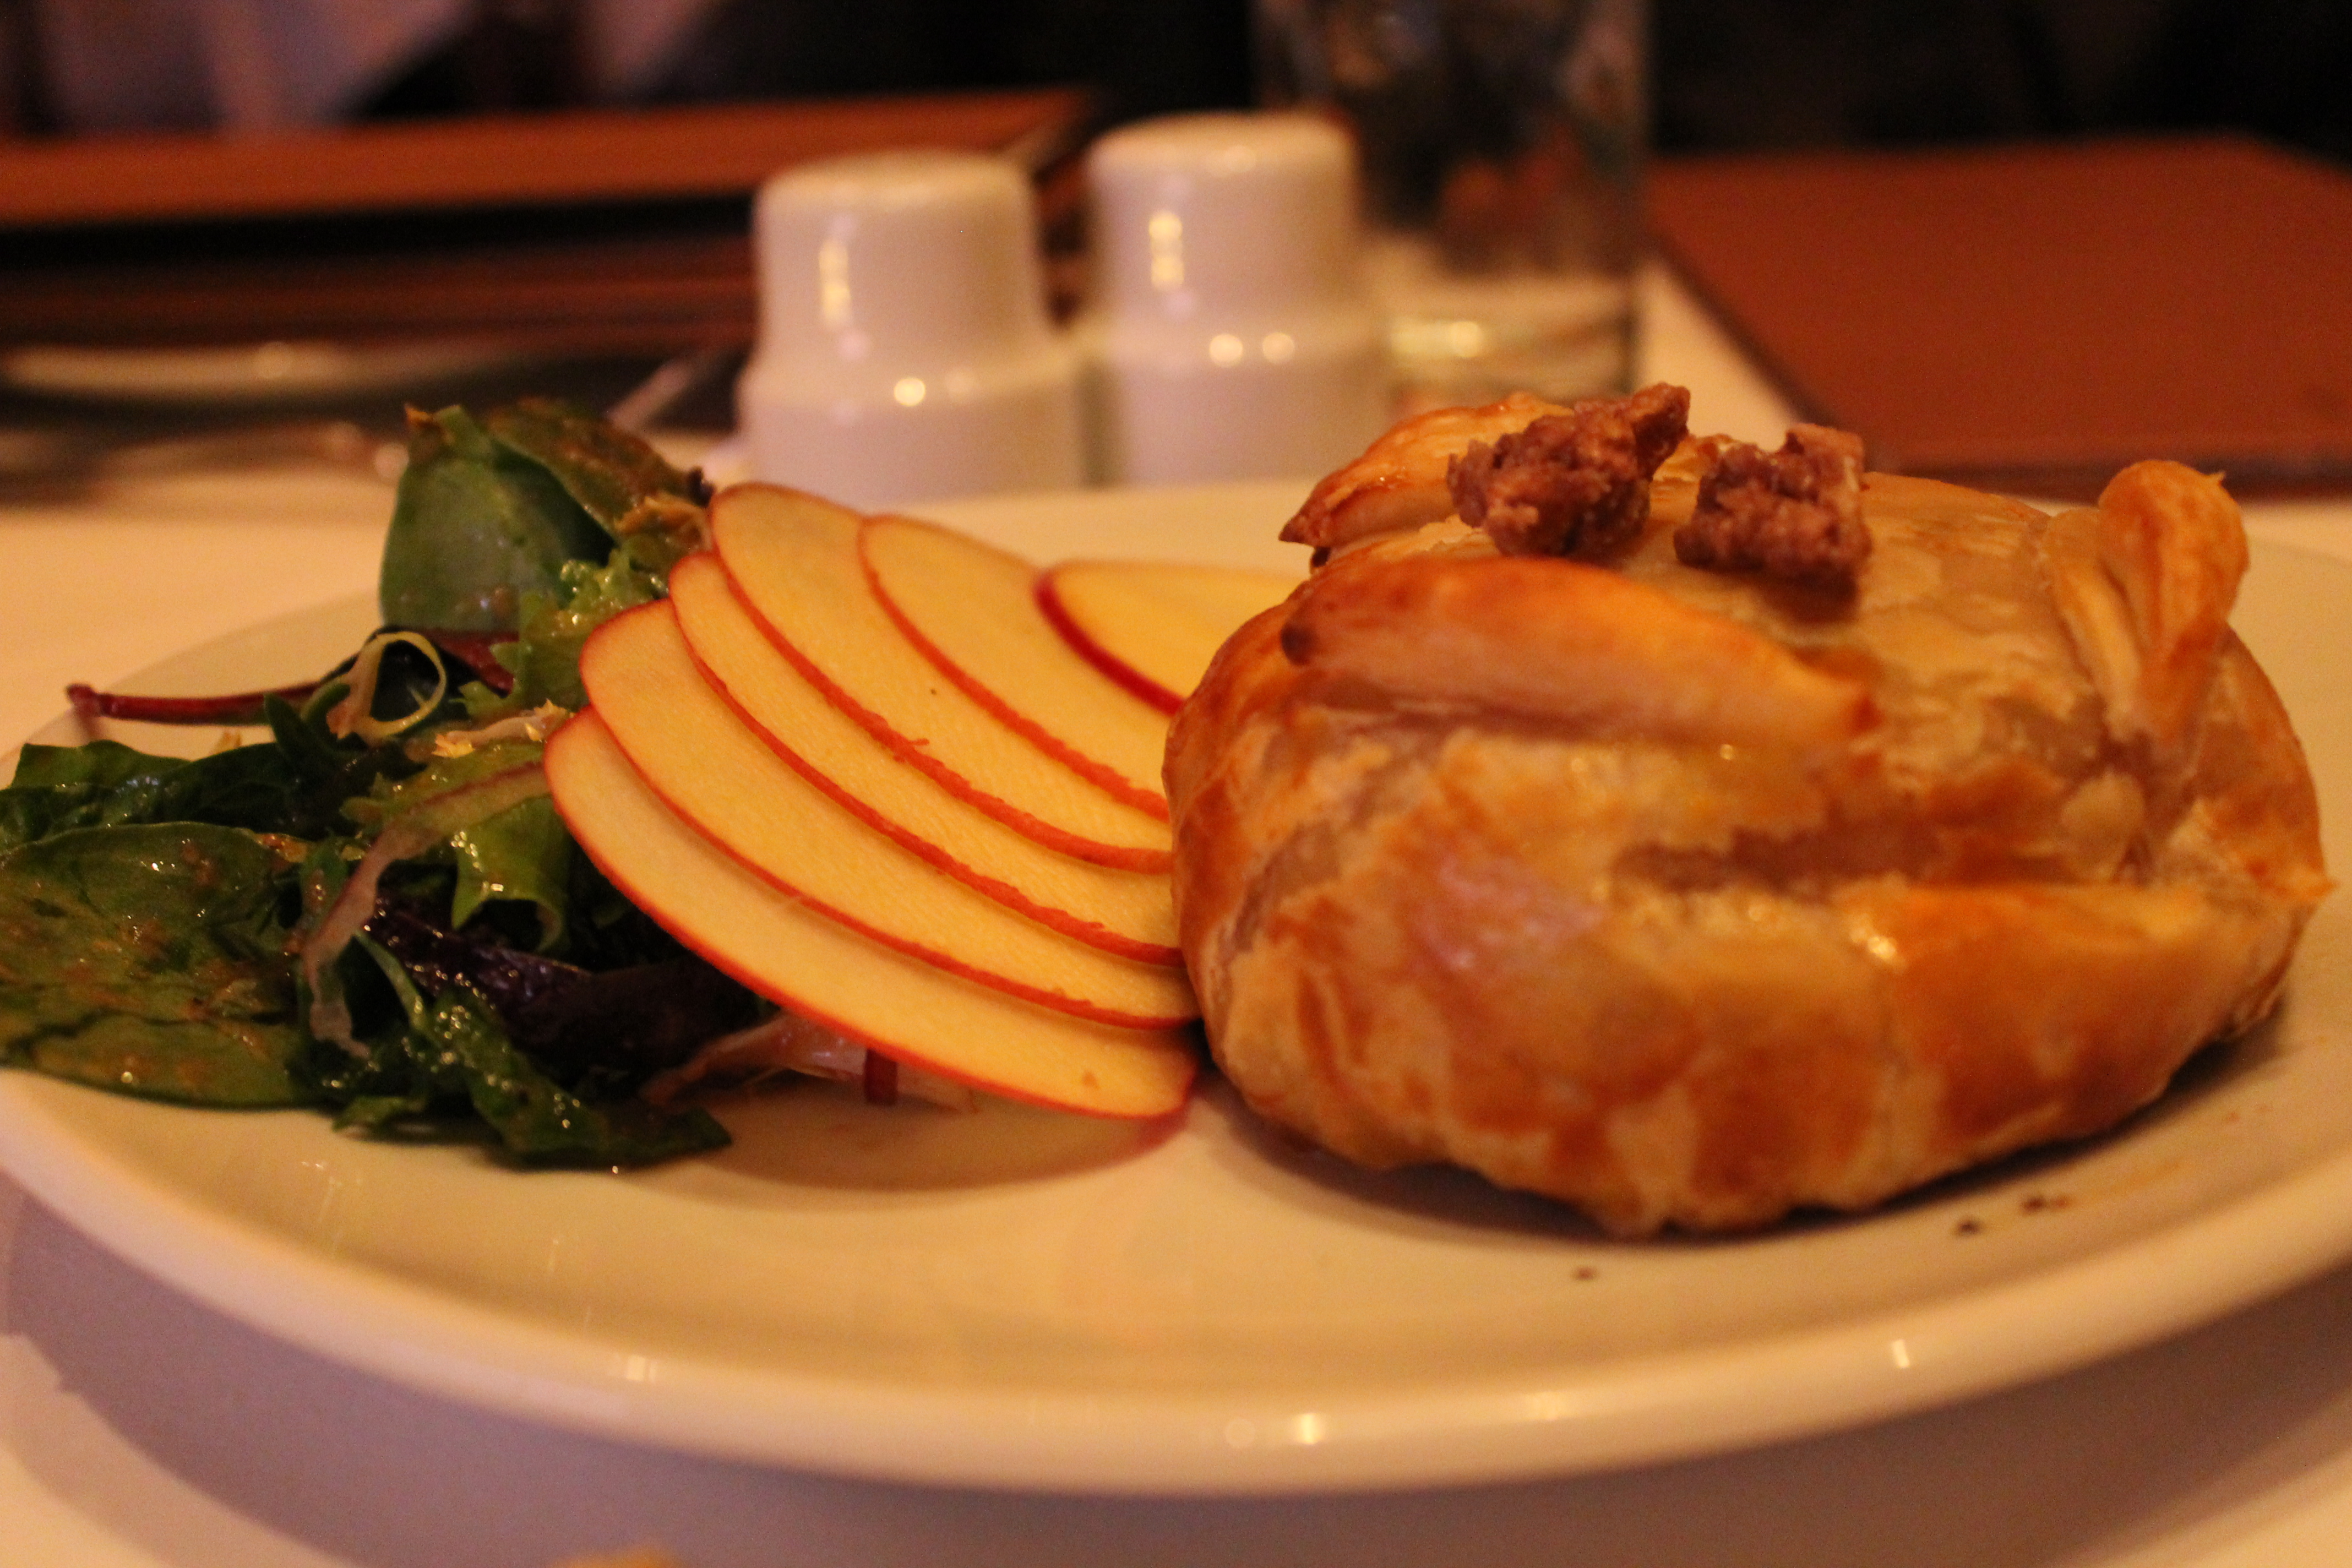 baked brie in puffed pastry with candied walnuts and apples